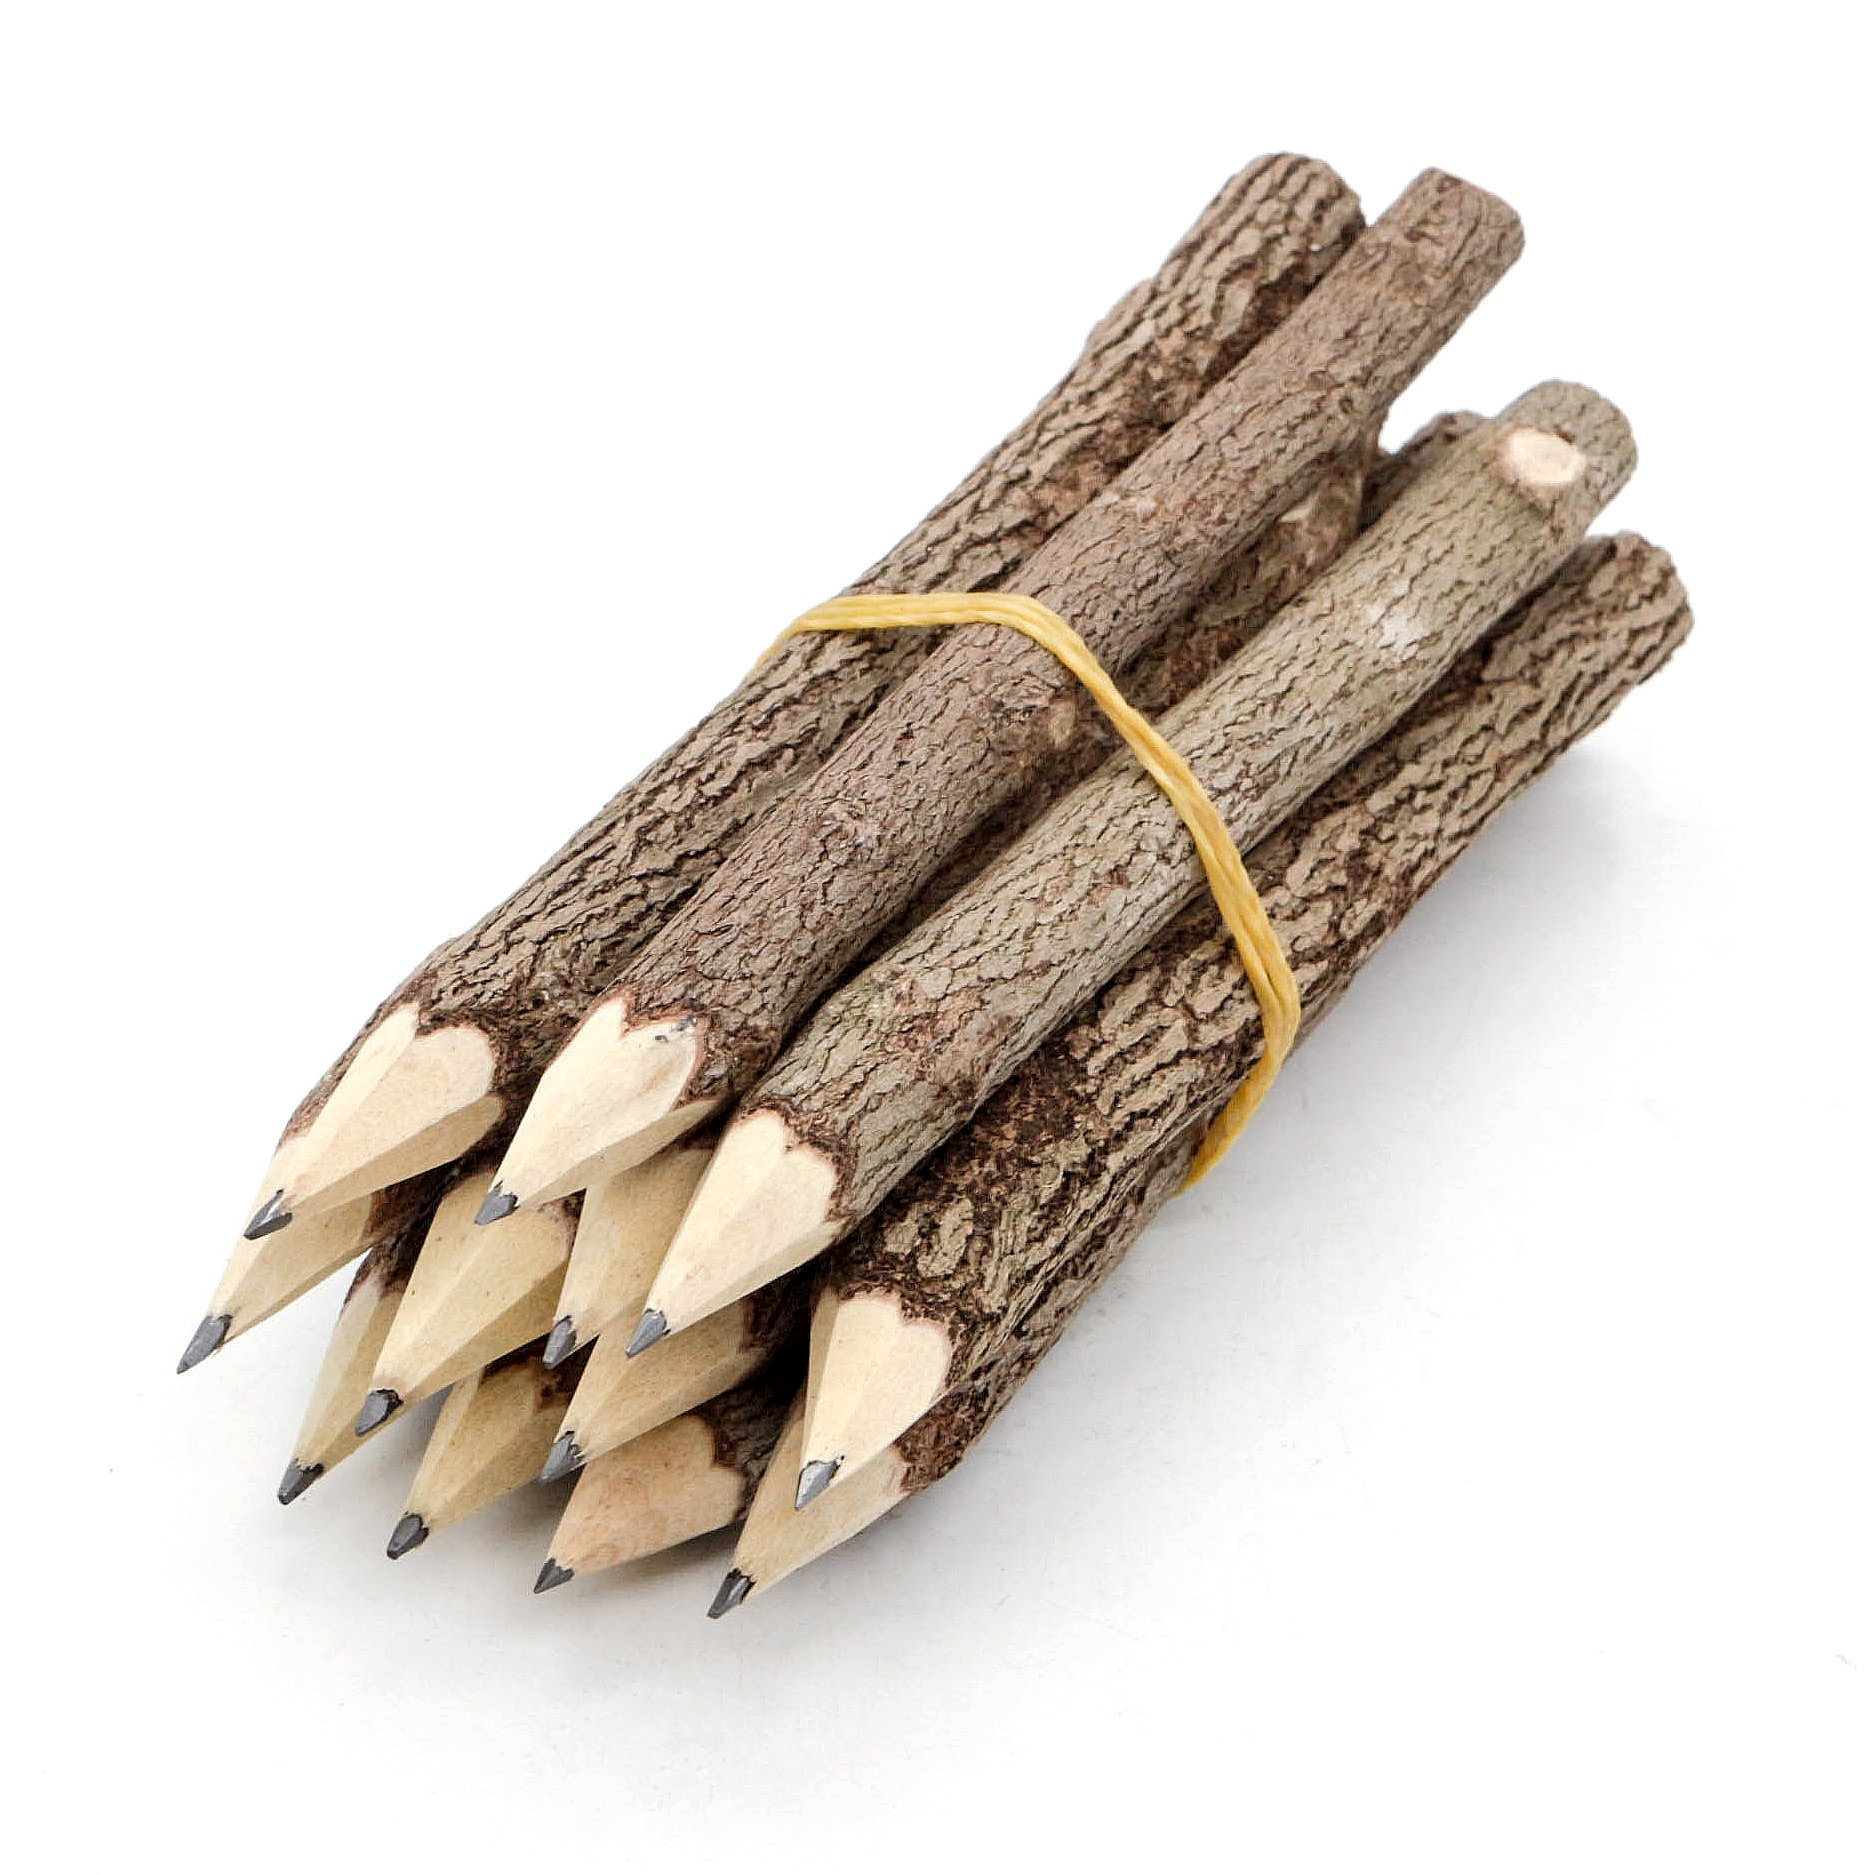 BSIRI Graphite Wooden Tree Rustic Twig Pencils Unique Birch of 12 Camping Lumberjack Party Novelty Gift by BSIRI (Image #1)